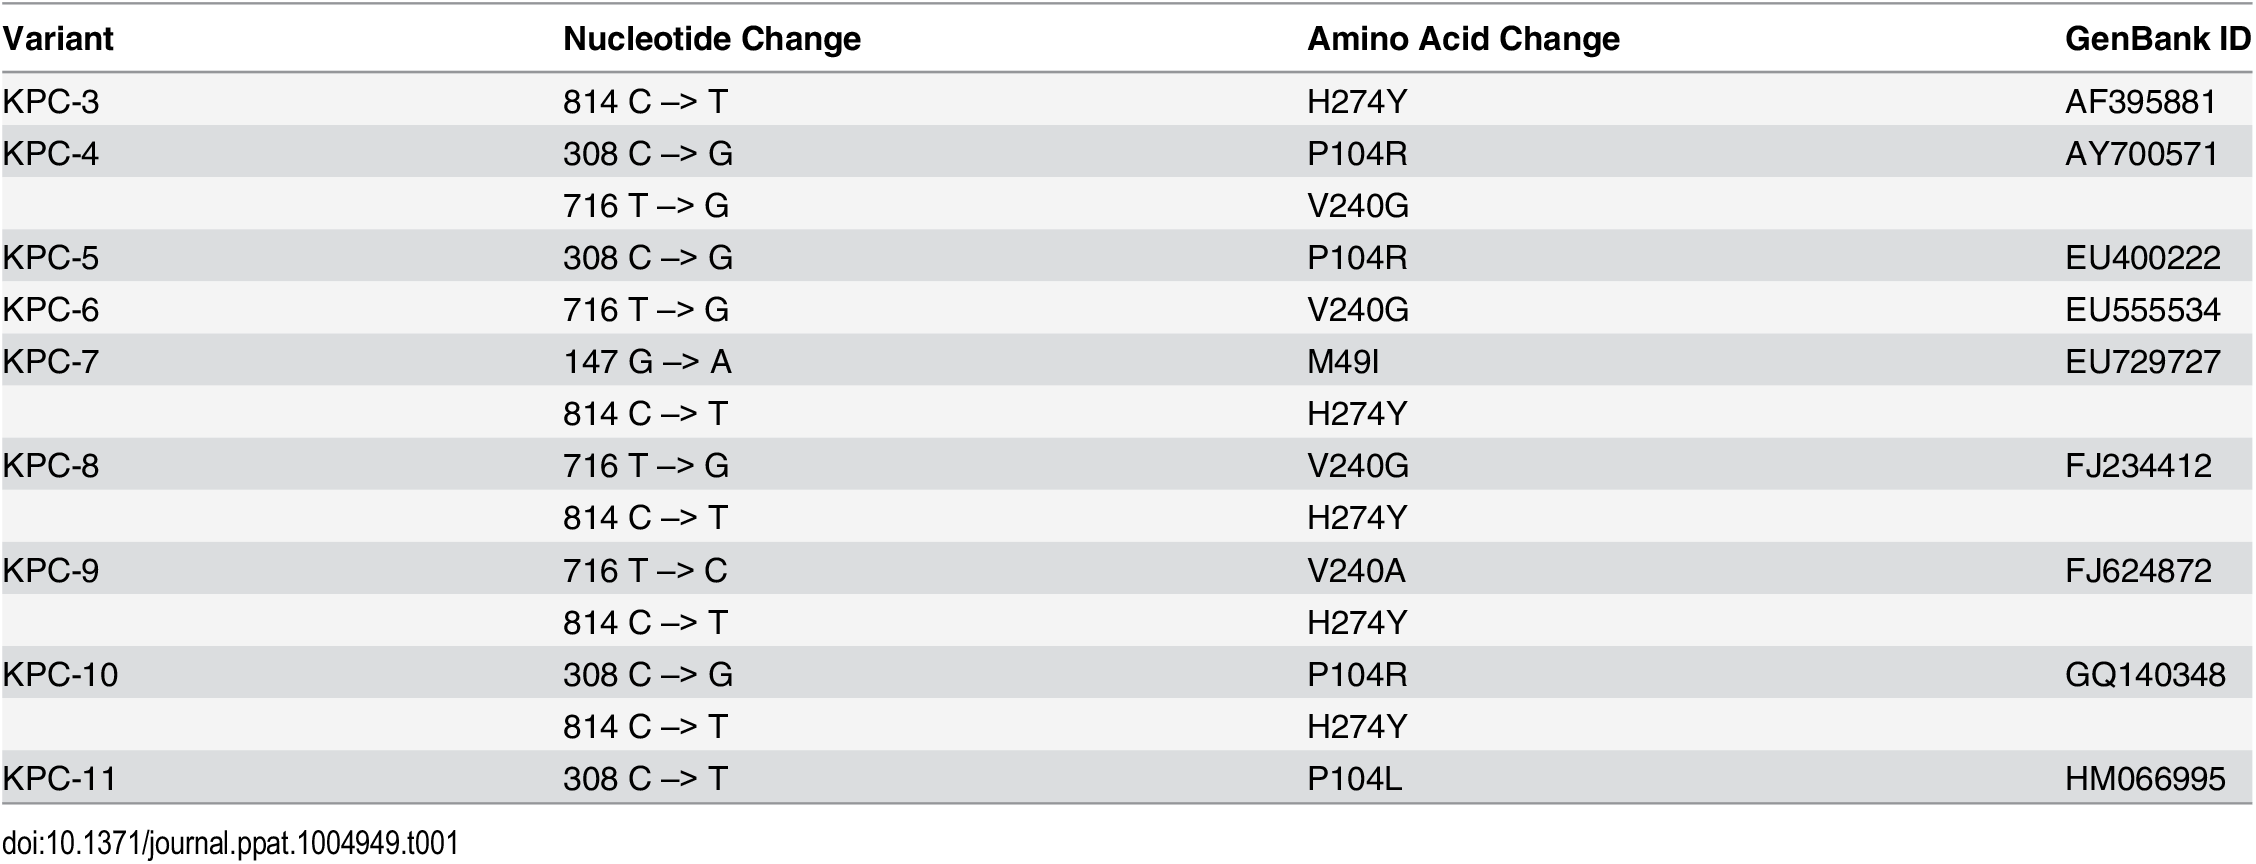 Nucleotide polymorphisms and amino acid changes in variants as compared to KPC-2.